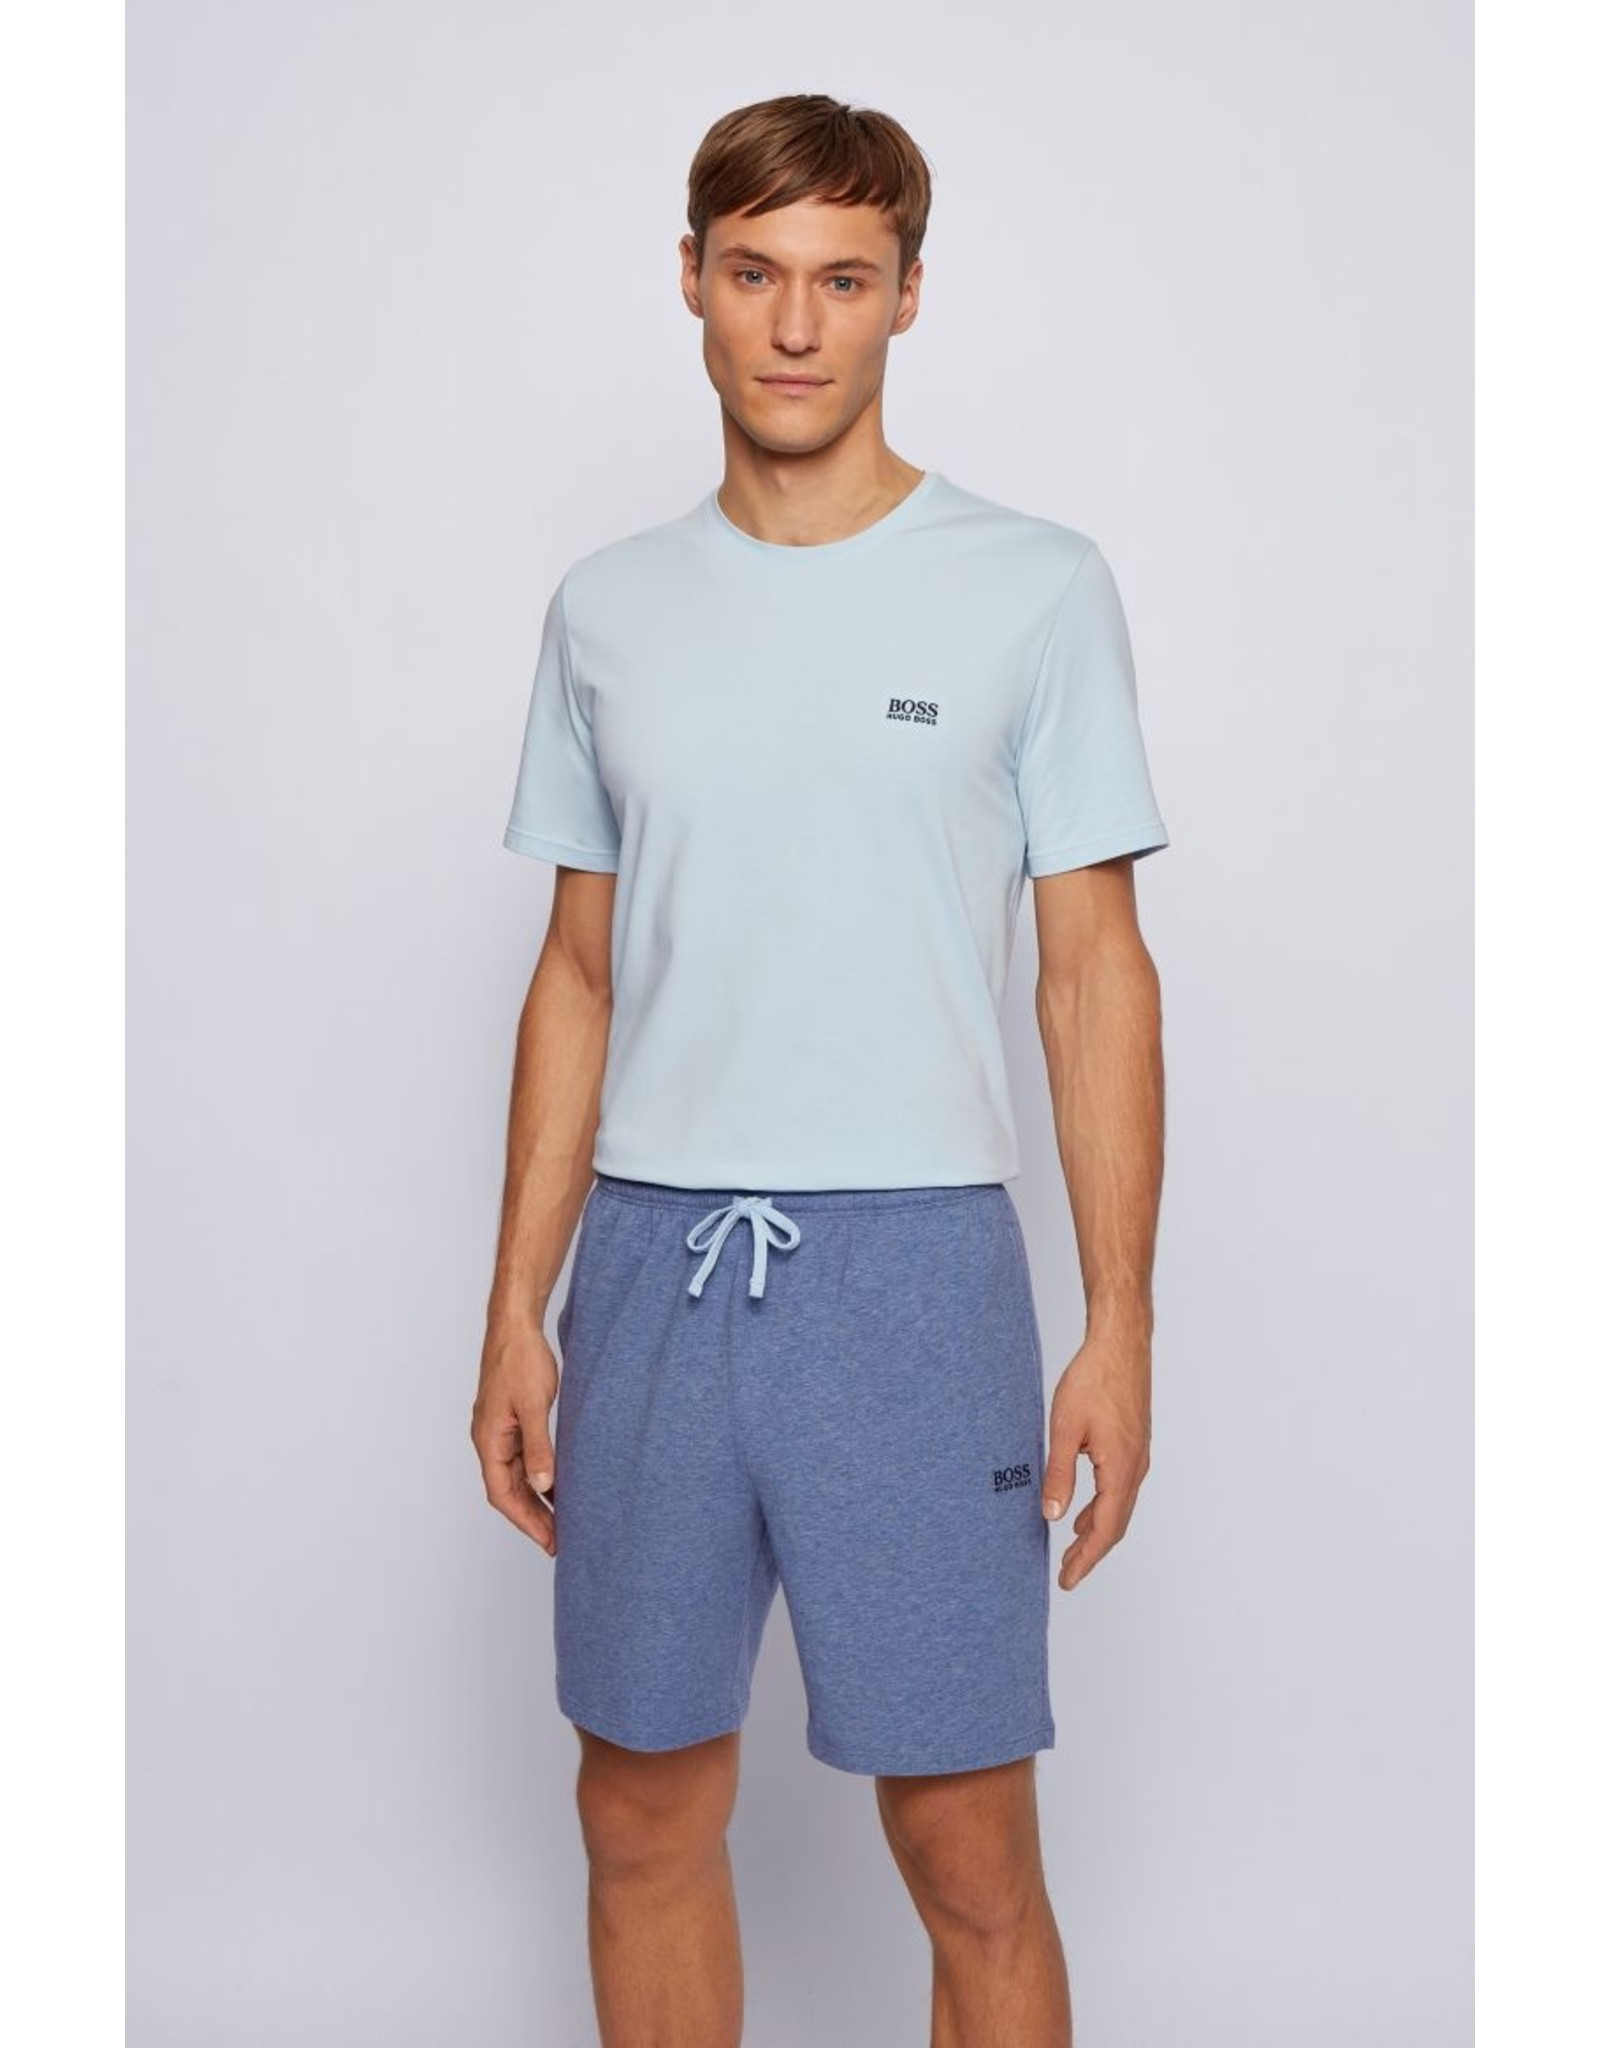 BOSS LOUNGEWEAR BOSS LOUNGEWEAR MIX&MATCH SHORTS